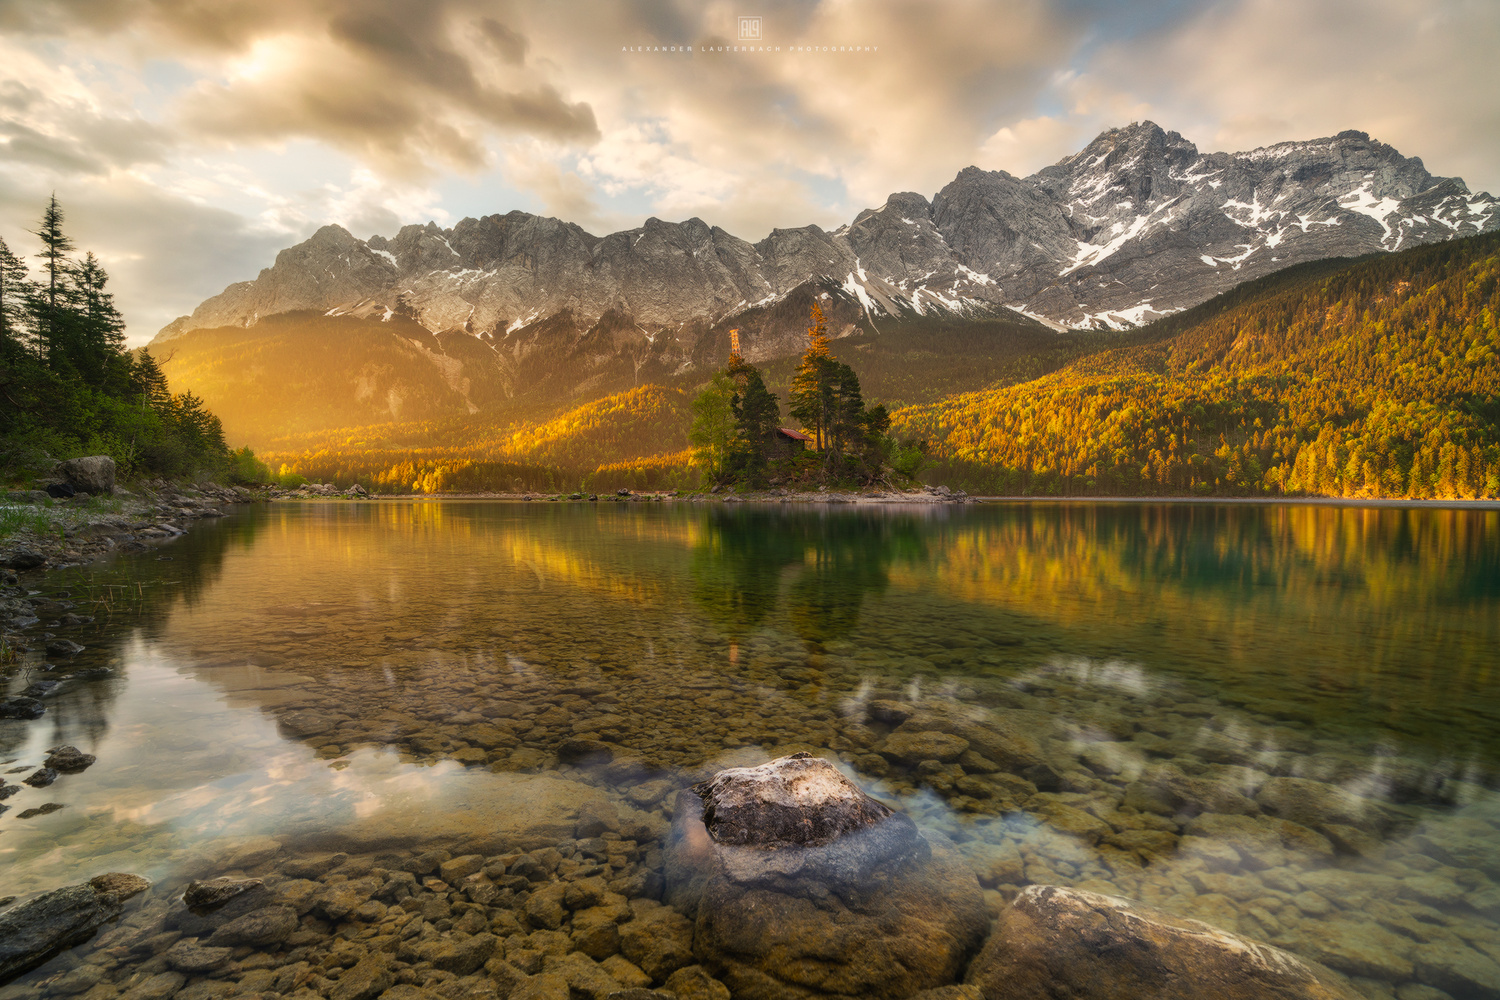 Sunrise at Lake Eibsee by Alexander Lauterbach